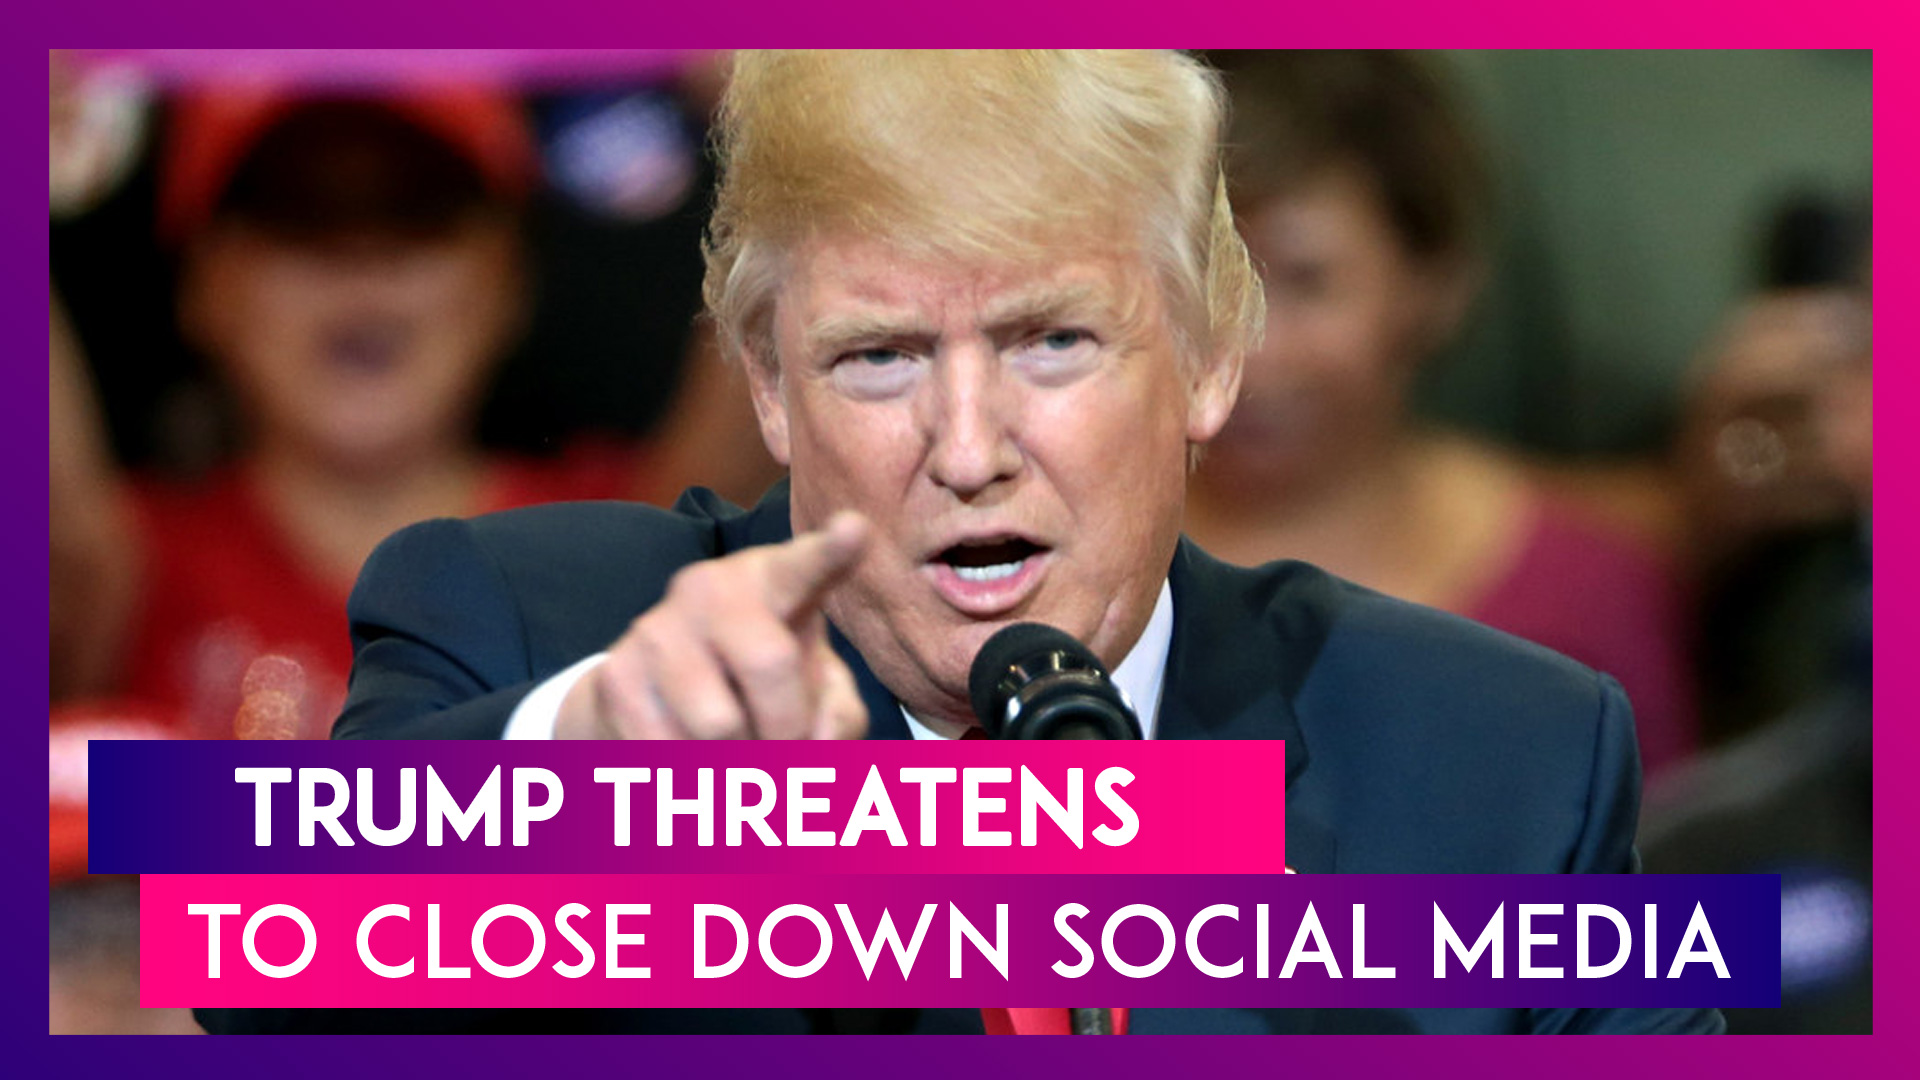 Donald Trump Threatens To Close Down Social Media, After Twitter Fact-Checks Two Of His Tweets